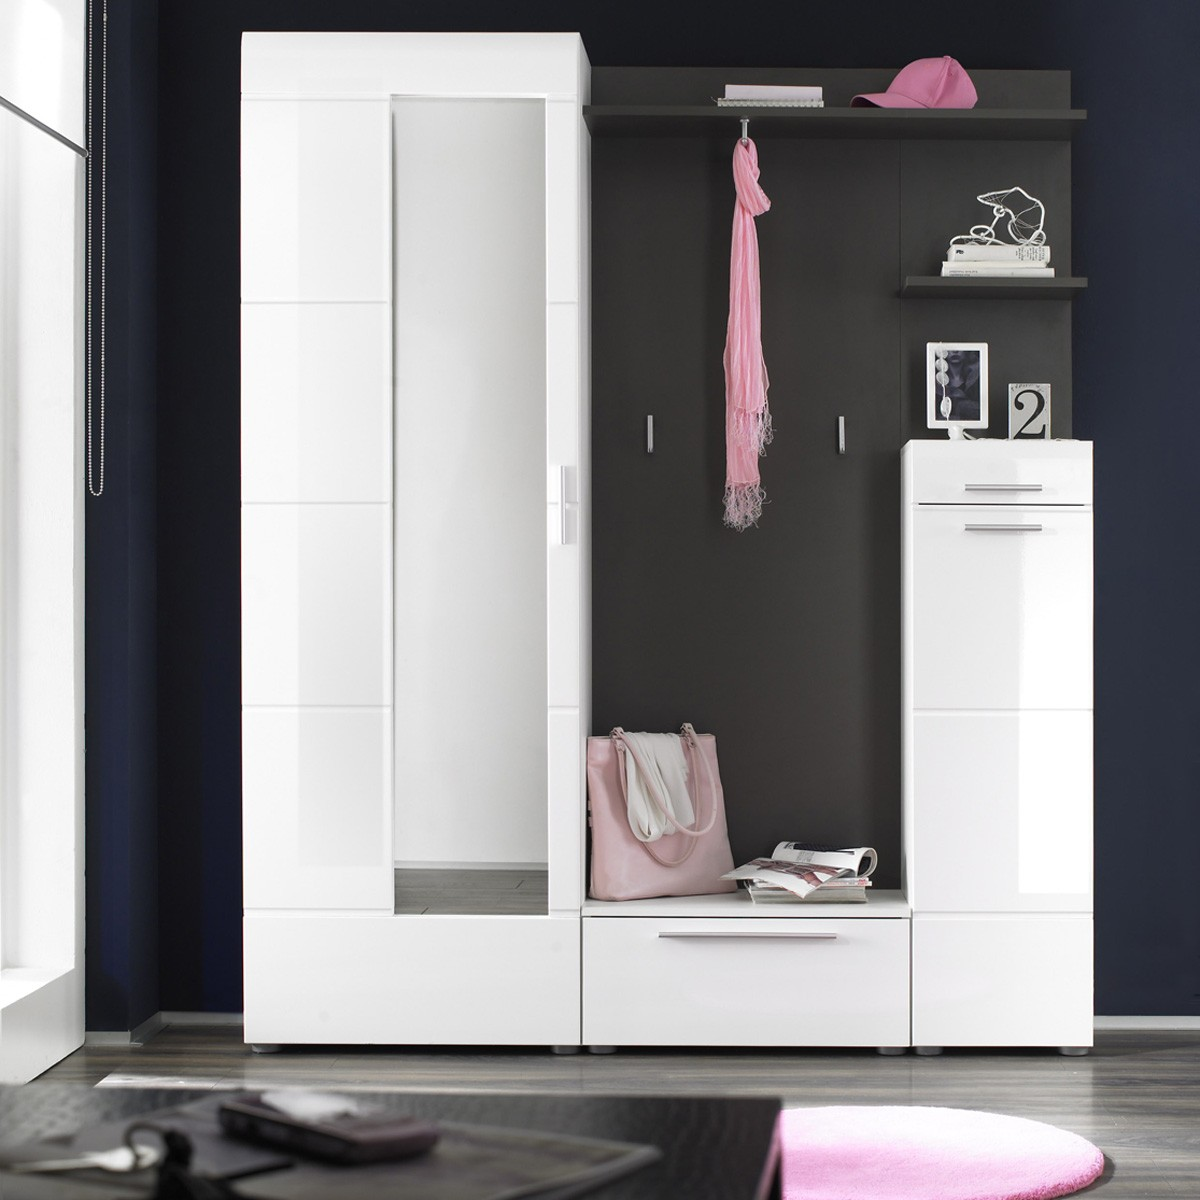 garderobe 5 teilig garderoben set garderobe modern in wei anthrazit ebay. Black Bedroom Furniture Sets. Home Design Ideas